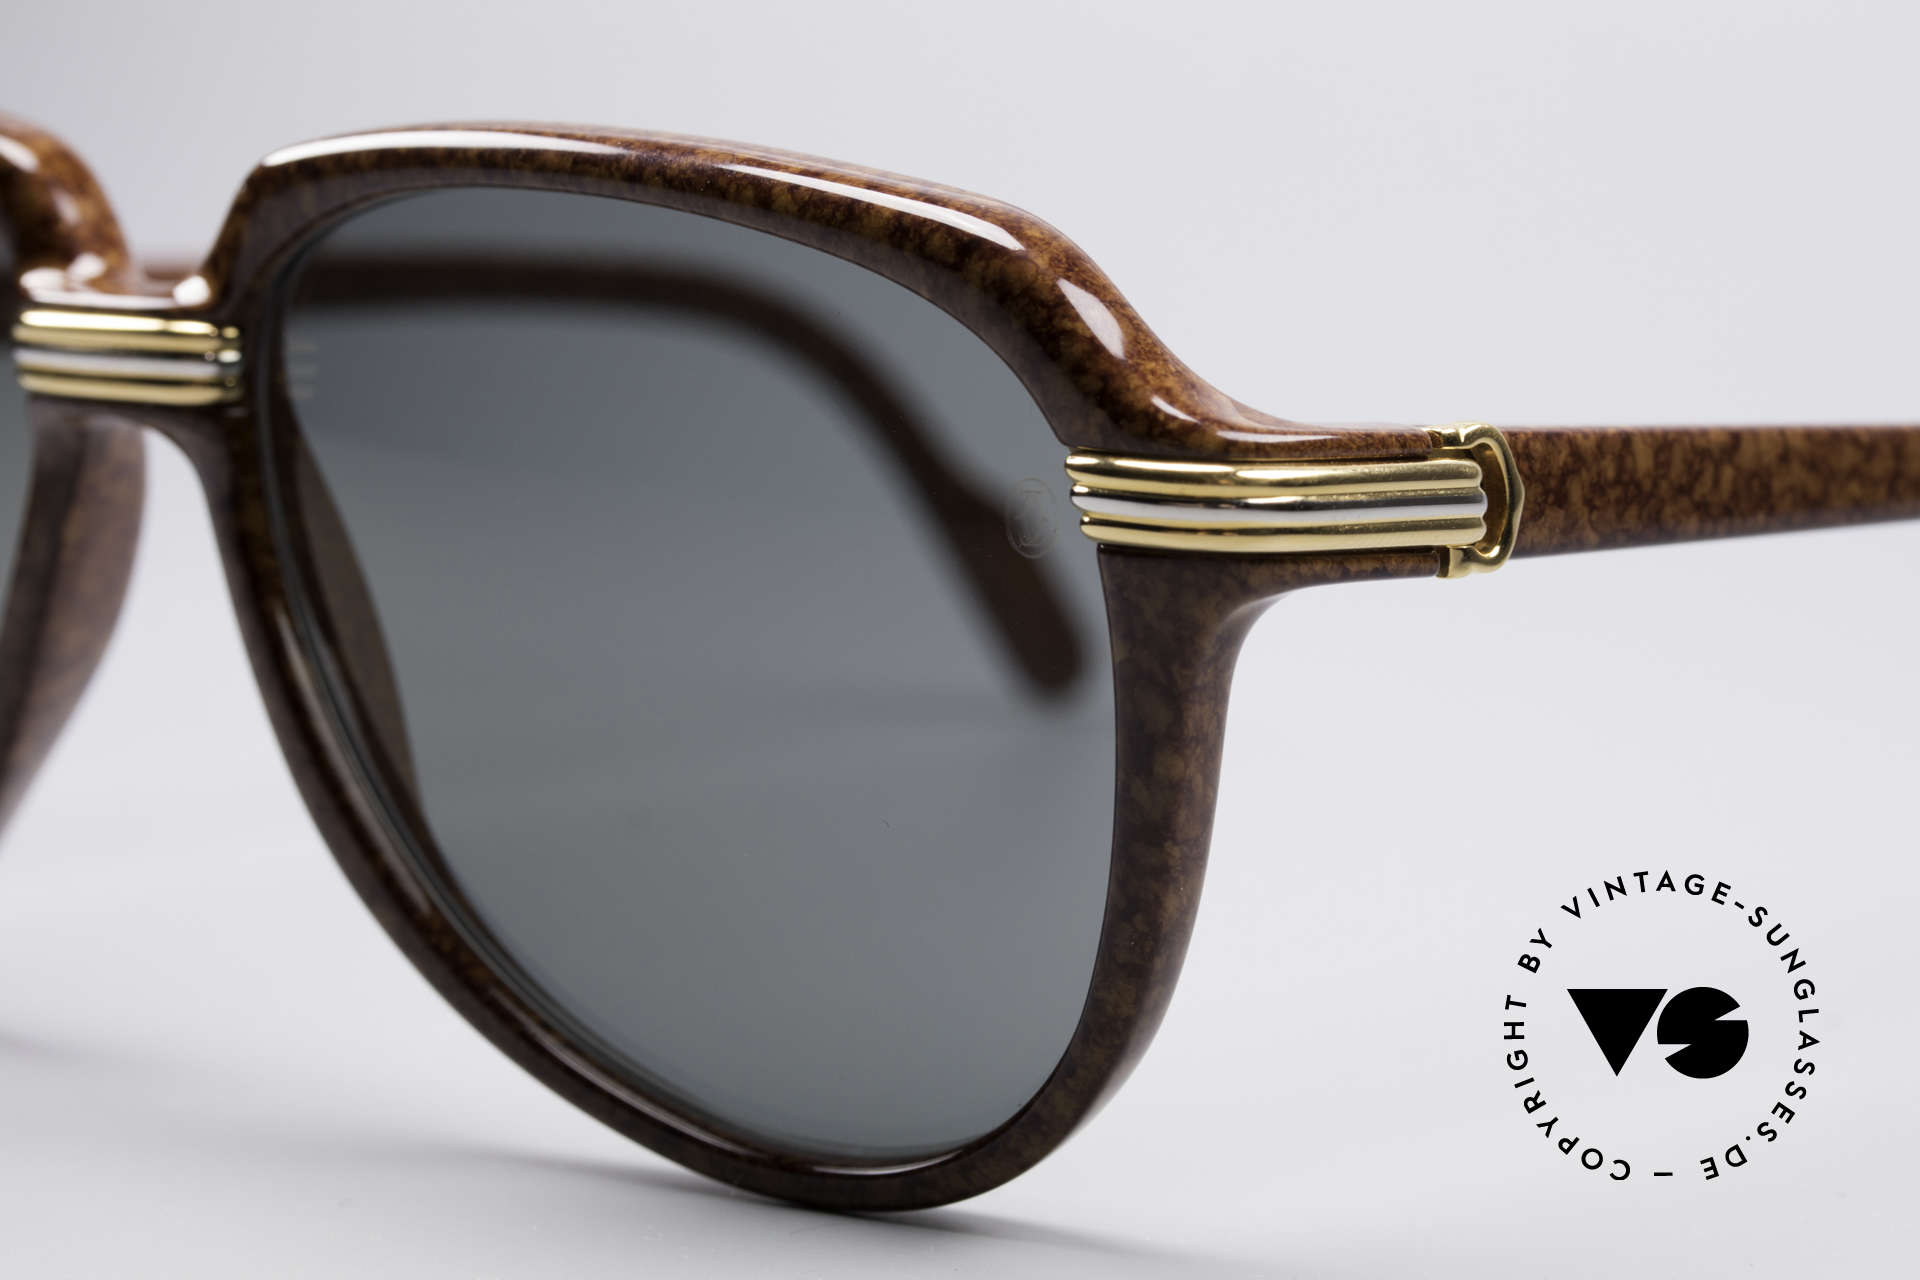 Cartier Vitesse - L Luxury Aviator Shades, unworn, NOS (hard to find in this condition, these days), Made for Men